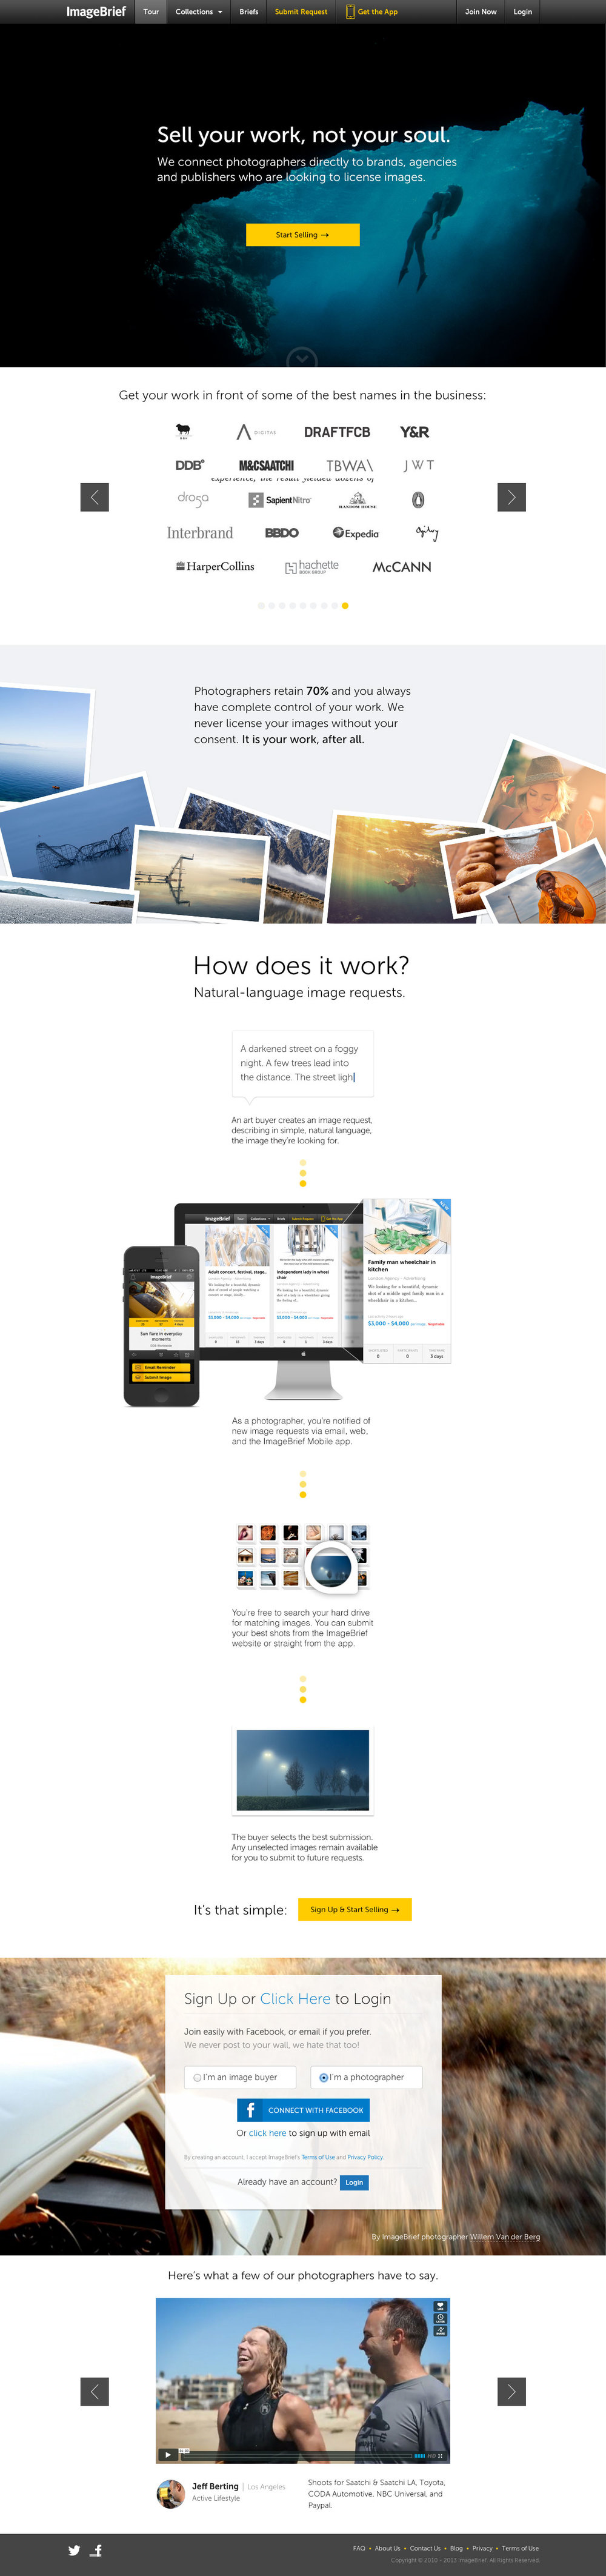 The Photographer Landing Page